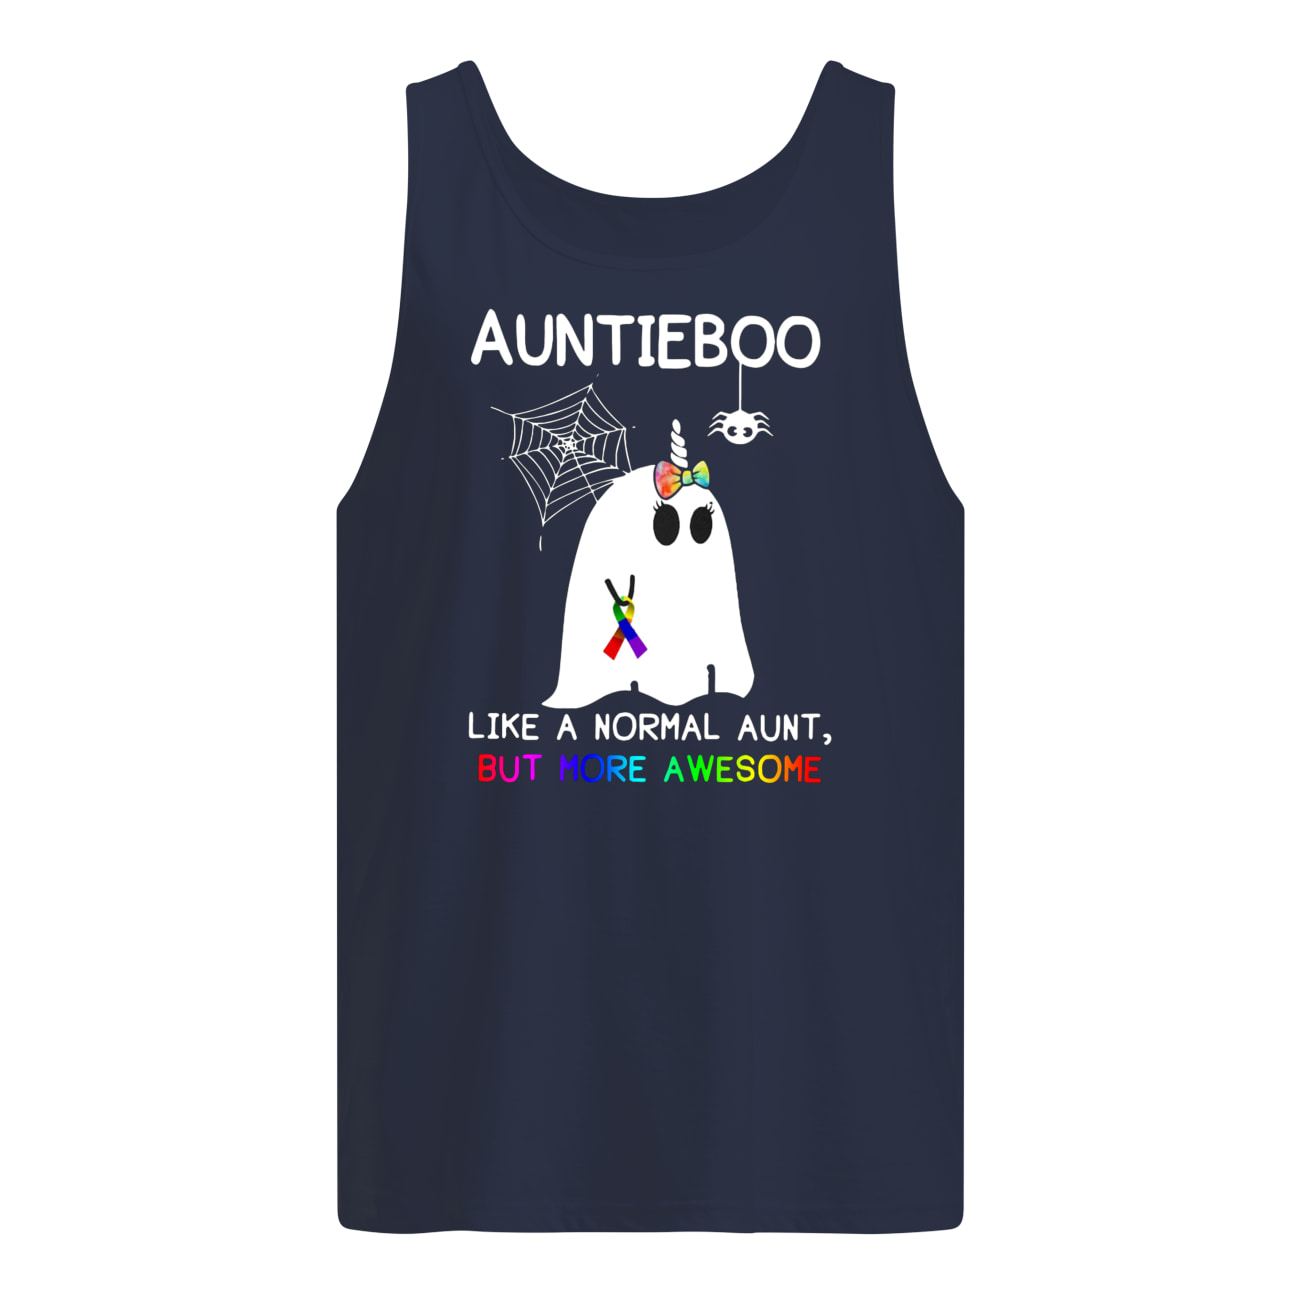 Auntieboo like a normal aunt but more awesome cancer ribbon tank top